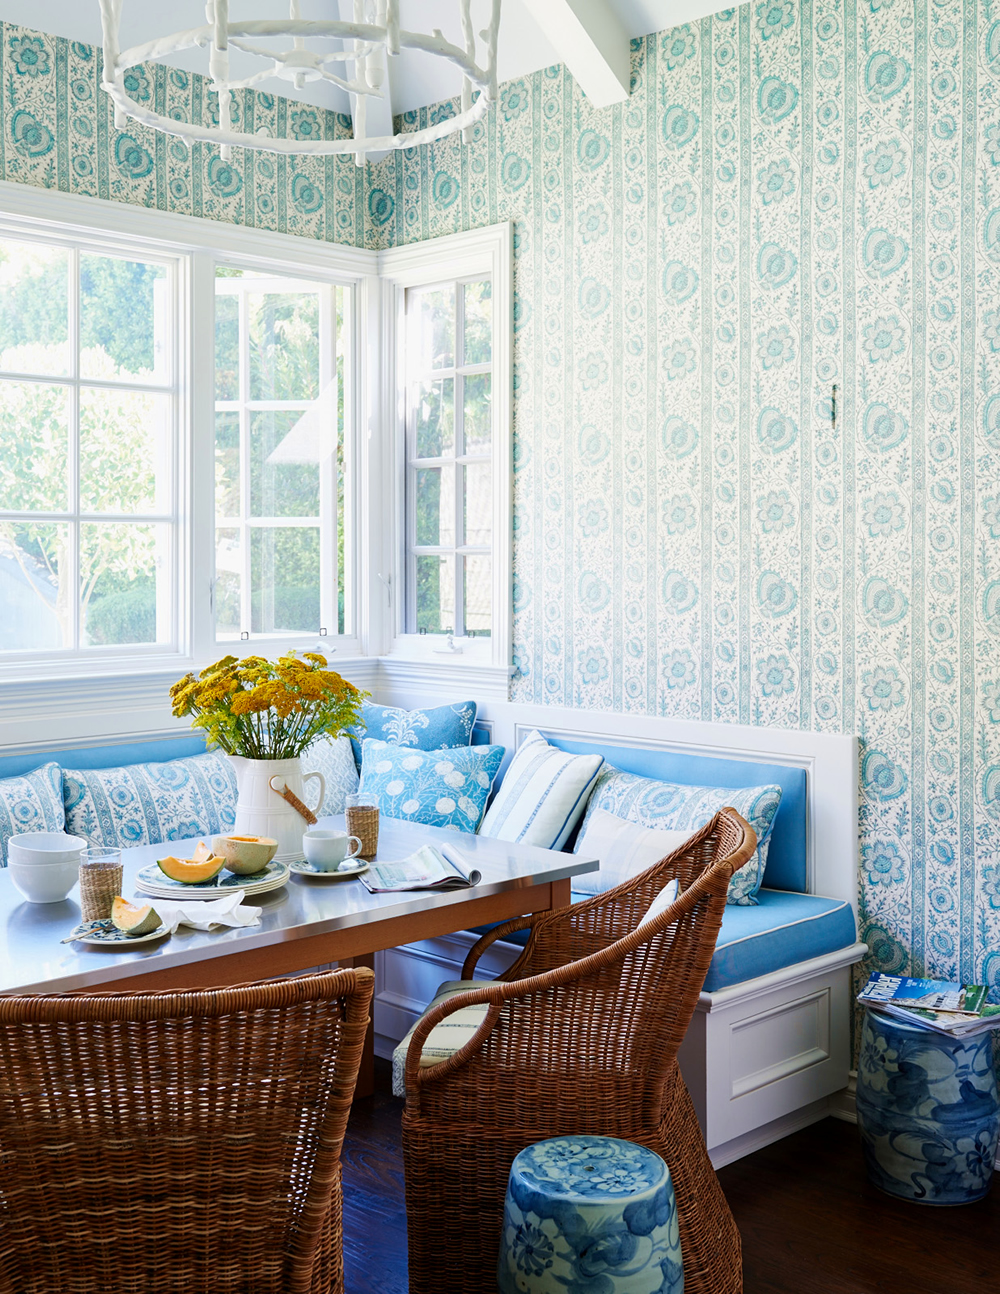 Quadrille Palampore Stripe wallpaper and pillows by Mark D Sikes